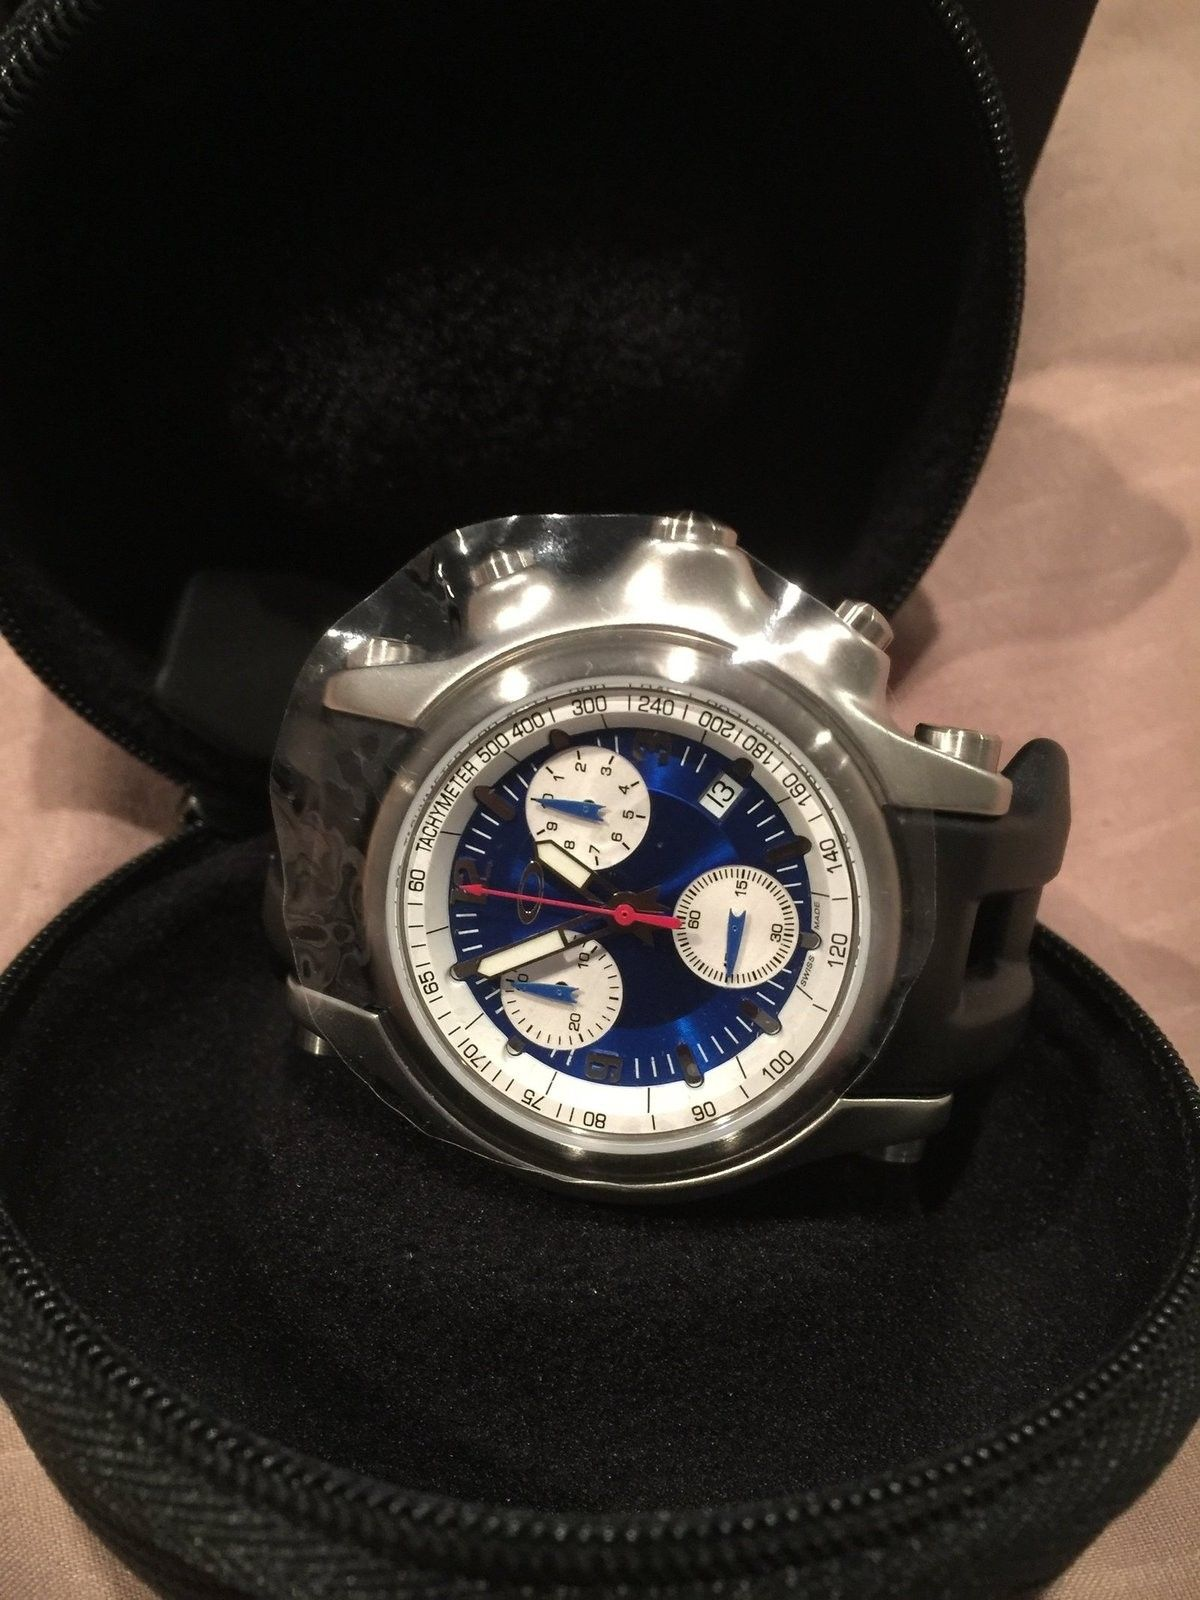 Oakley Men's Holeshot Unobtainium Chronograph Watch w/ Blue Face & Receipt - image.jpeg